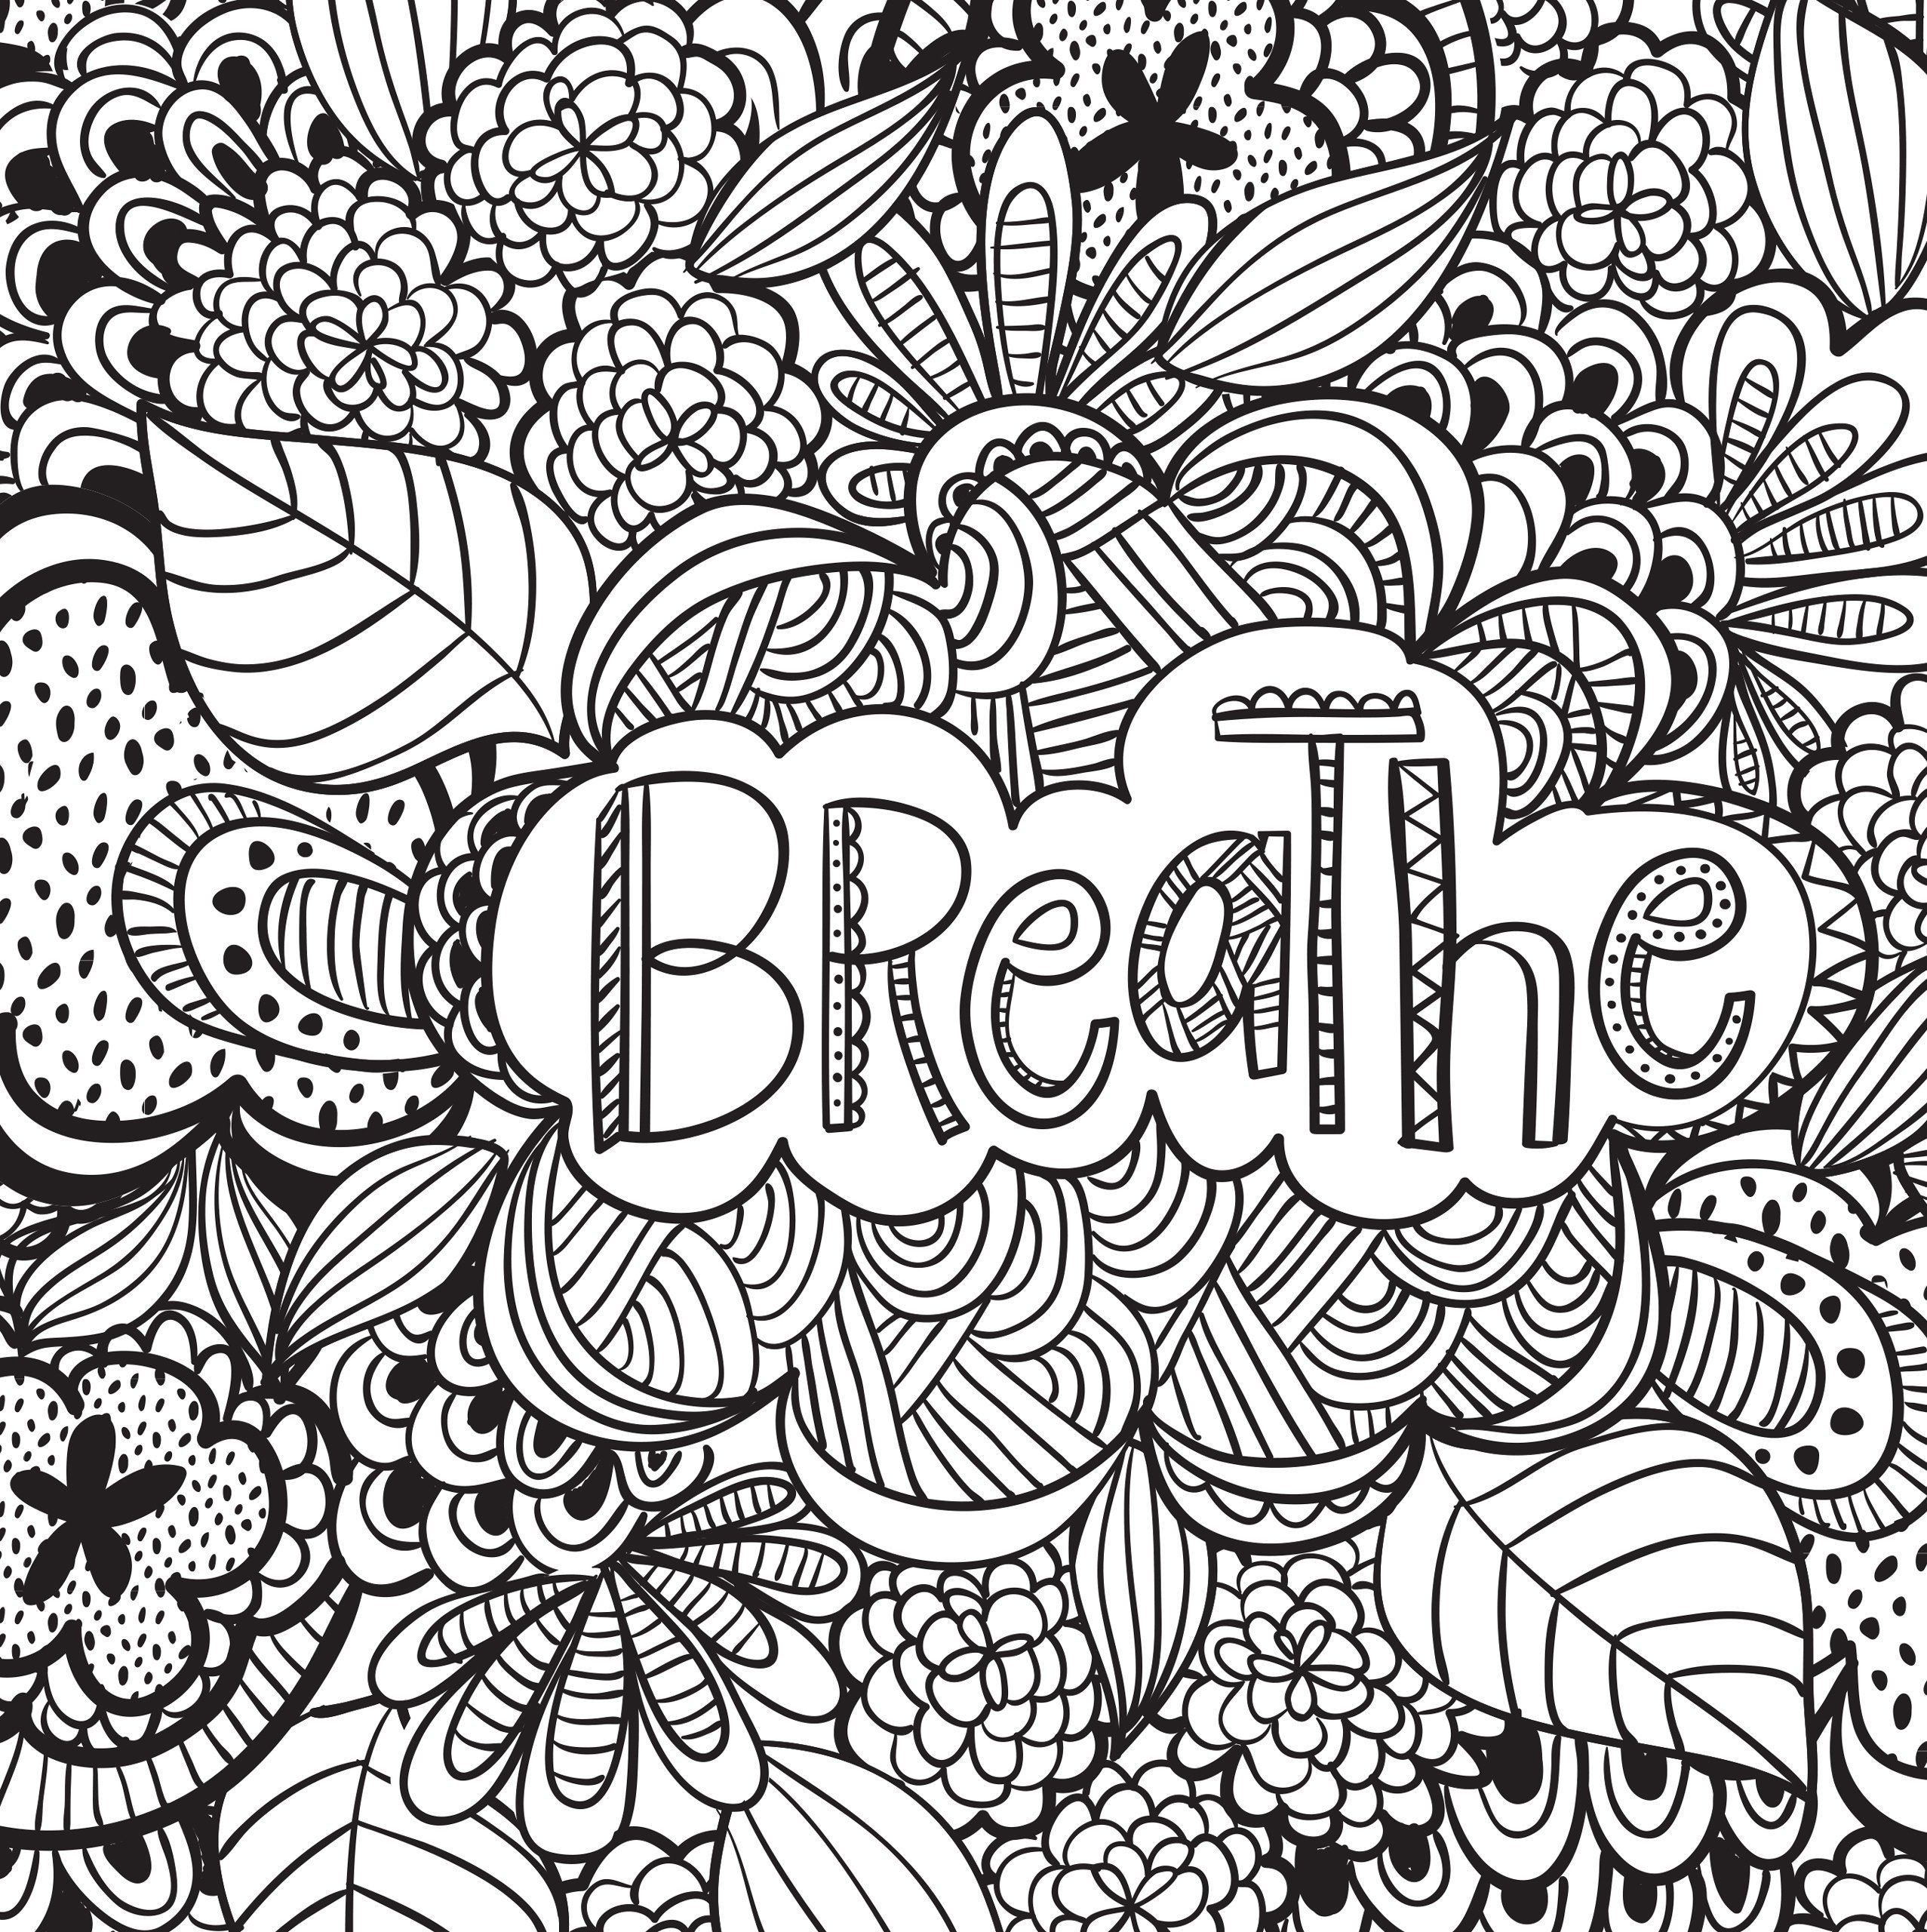 Best ideas about Therapeutic Coloring Pages For Kids . Save or Pin Joyful Inspiration Adult Coloring Book 31 stress Now.